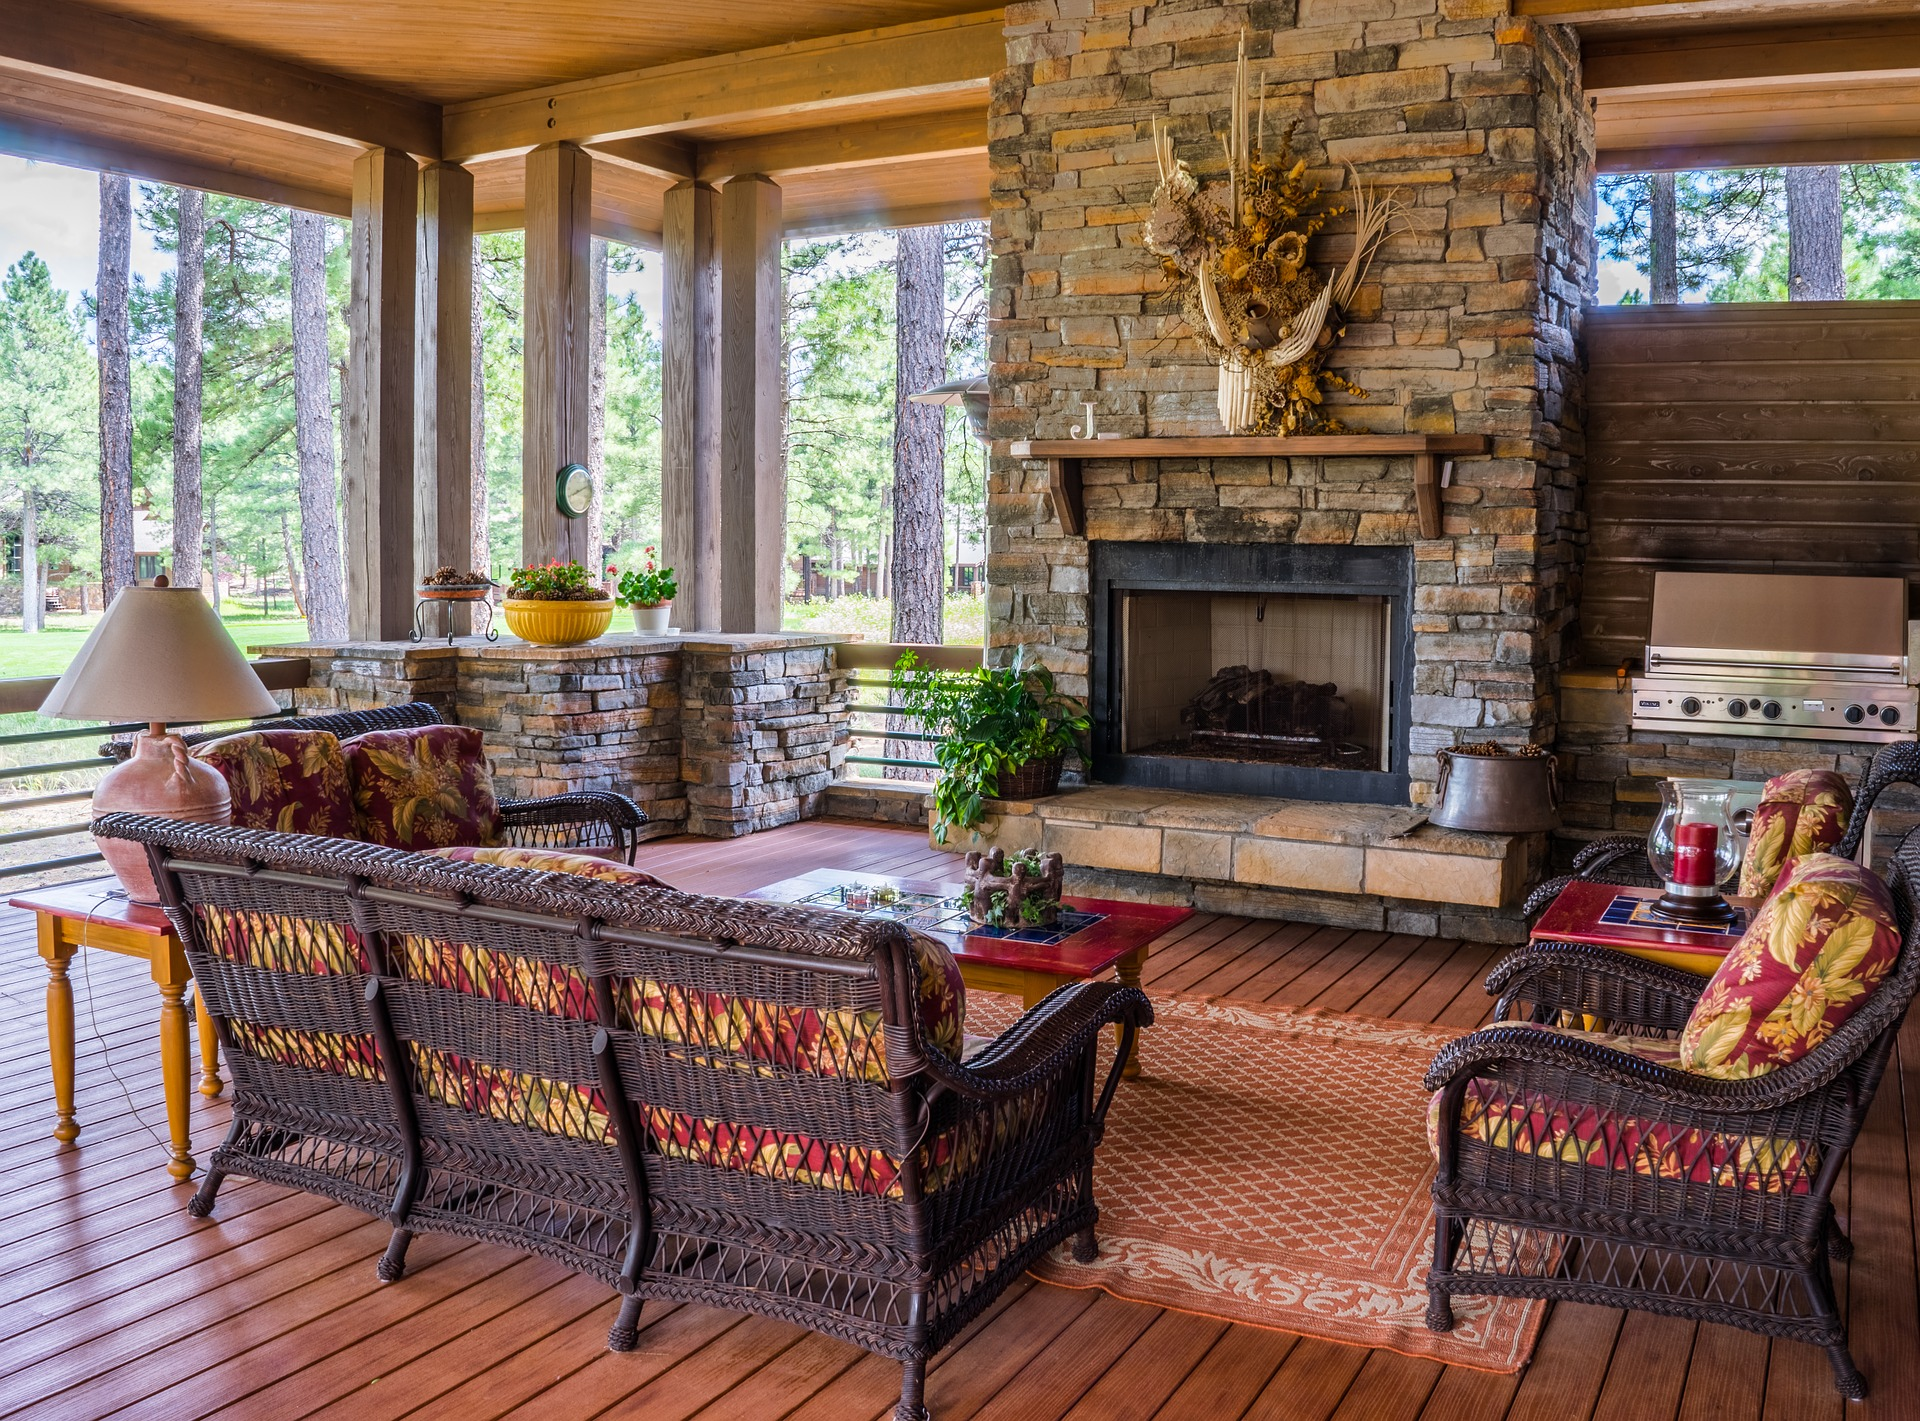 Take A Look At The Added Stone Work To This Porch Space By Adding In Stone  Wrap Arounds And Stone Cooking Space On Each Side Of The Stone Fireplace.